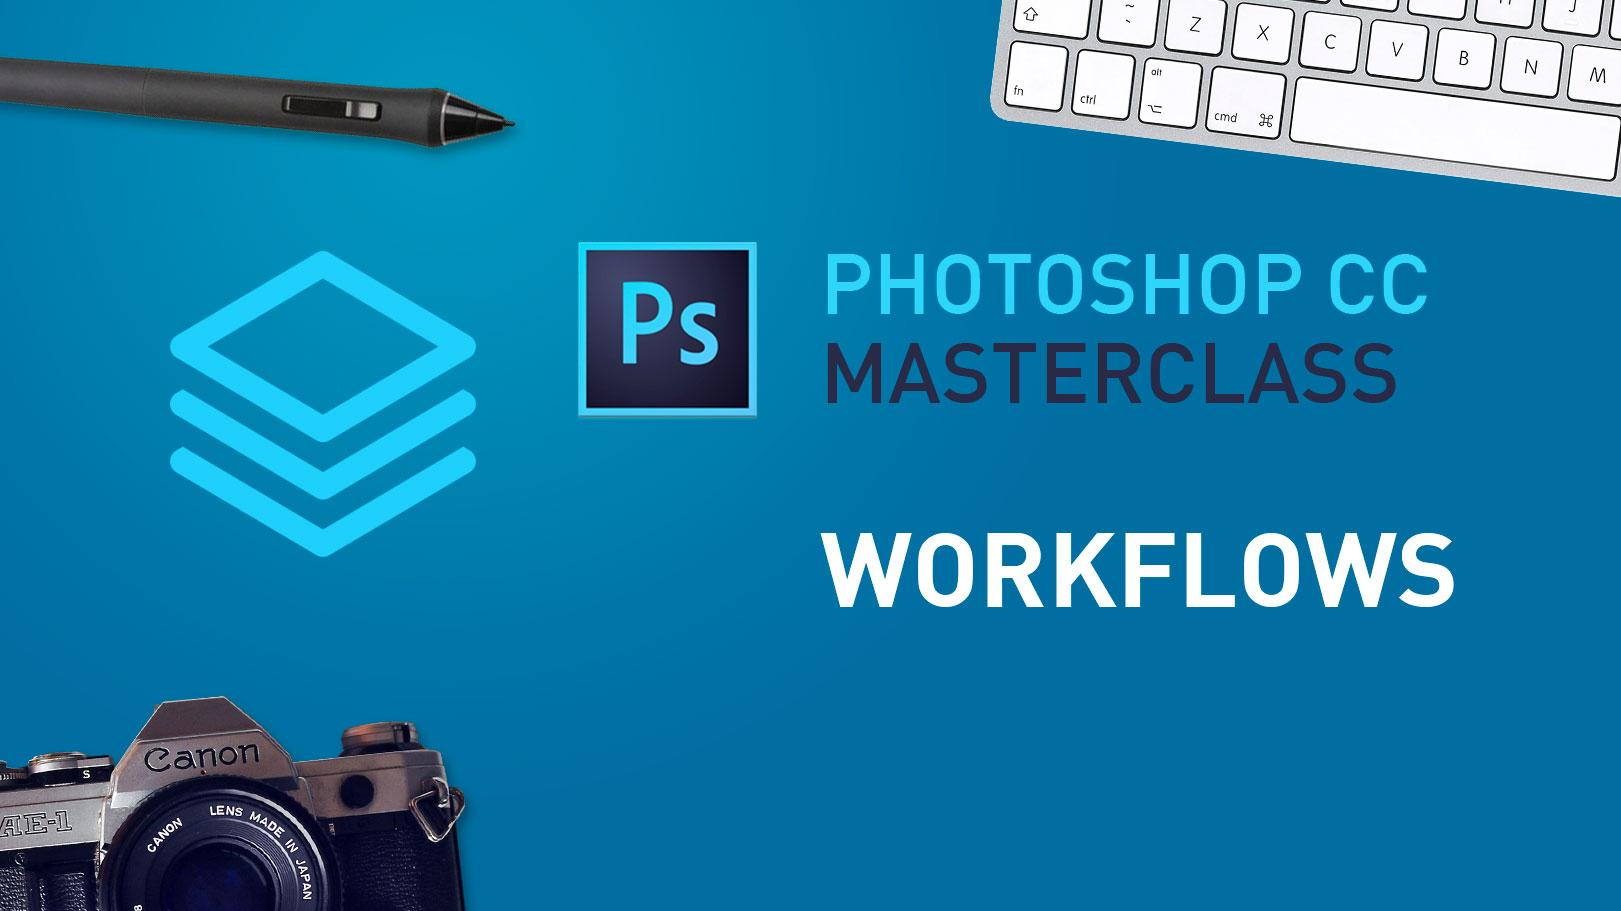 Photoshop 6 Photoshop Cc Masterclass Workflows Part 6 Martin Perhiniak